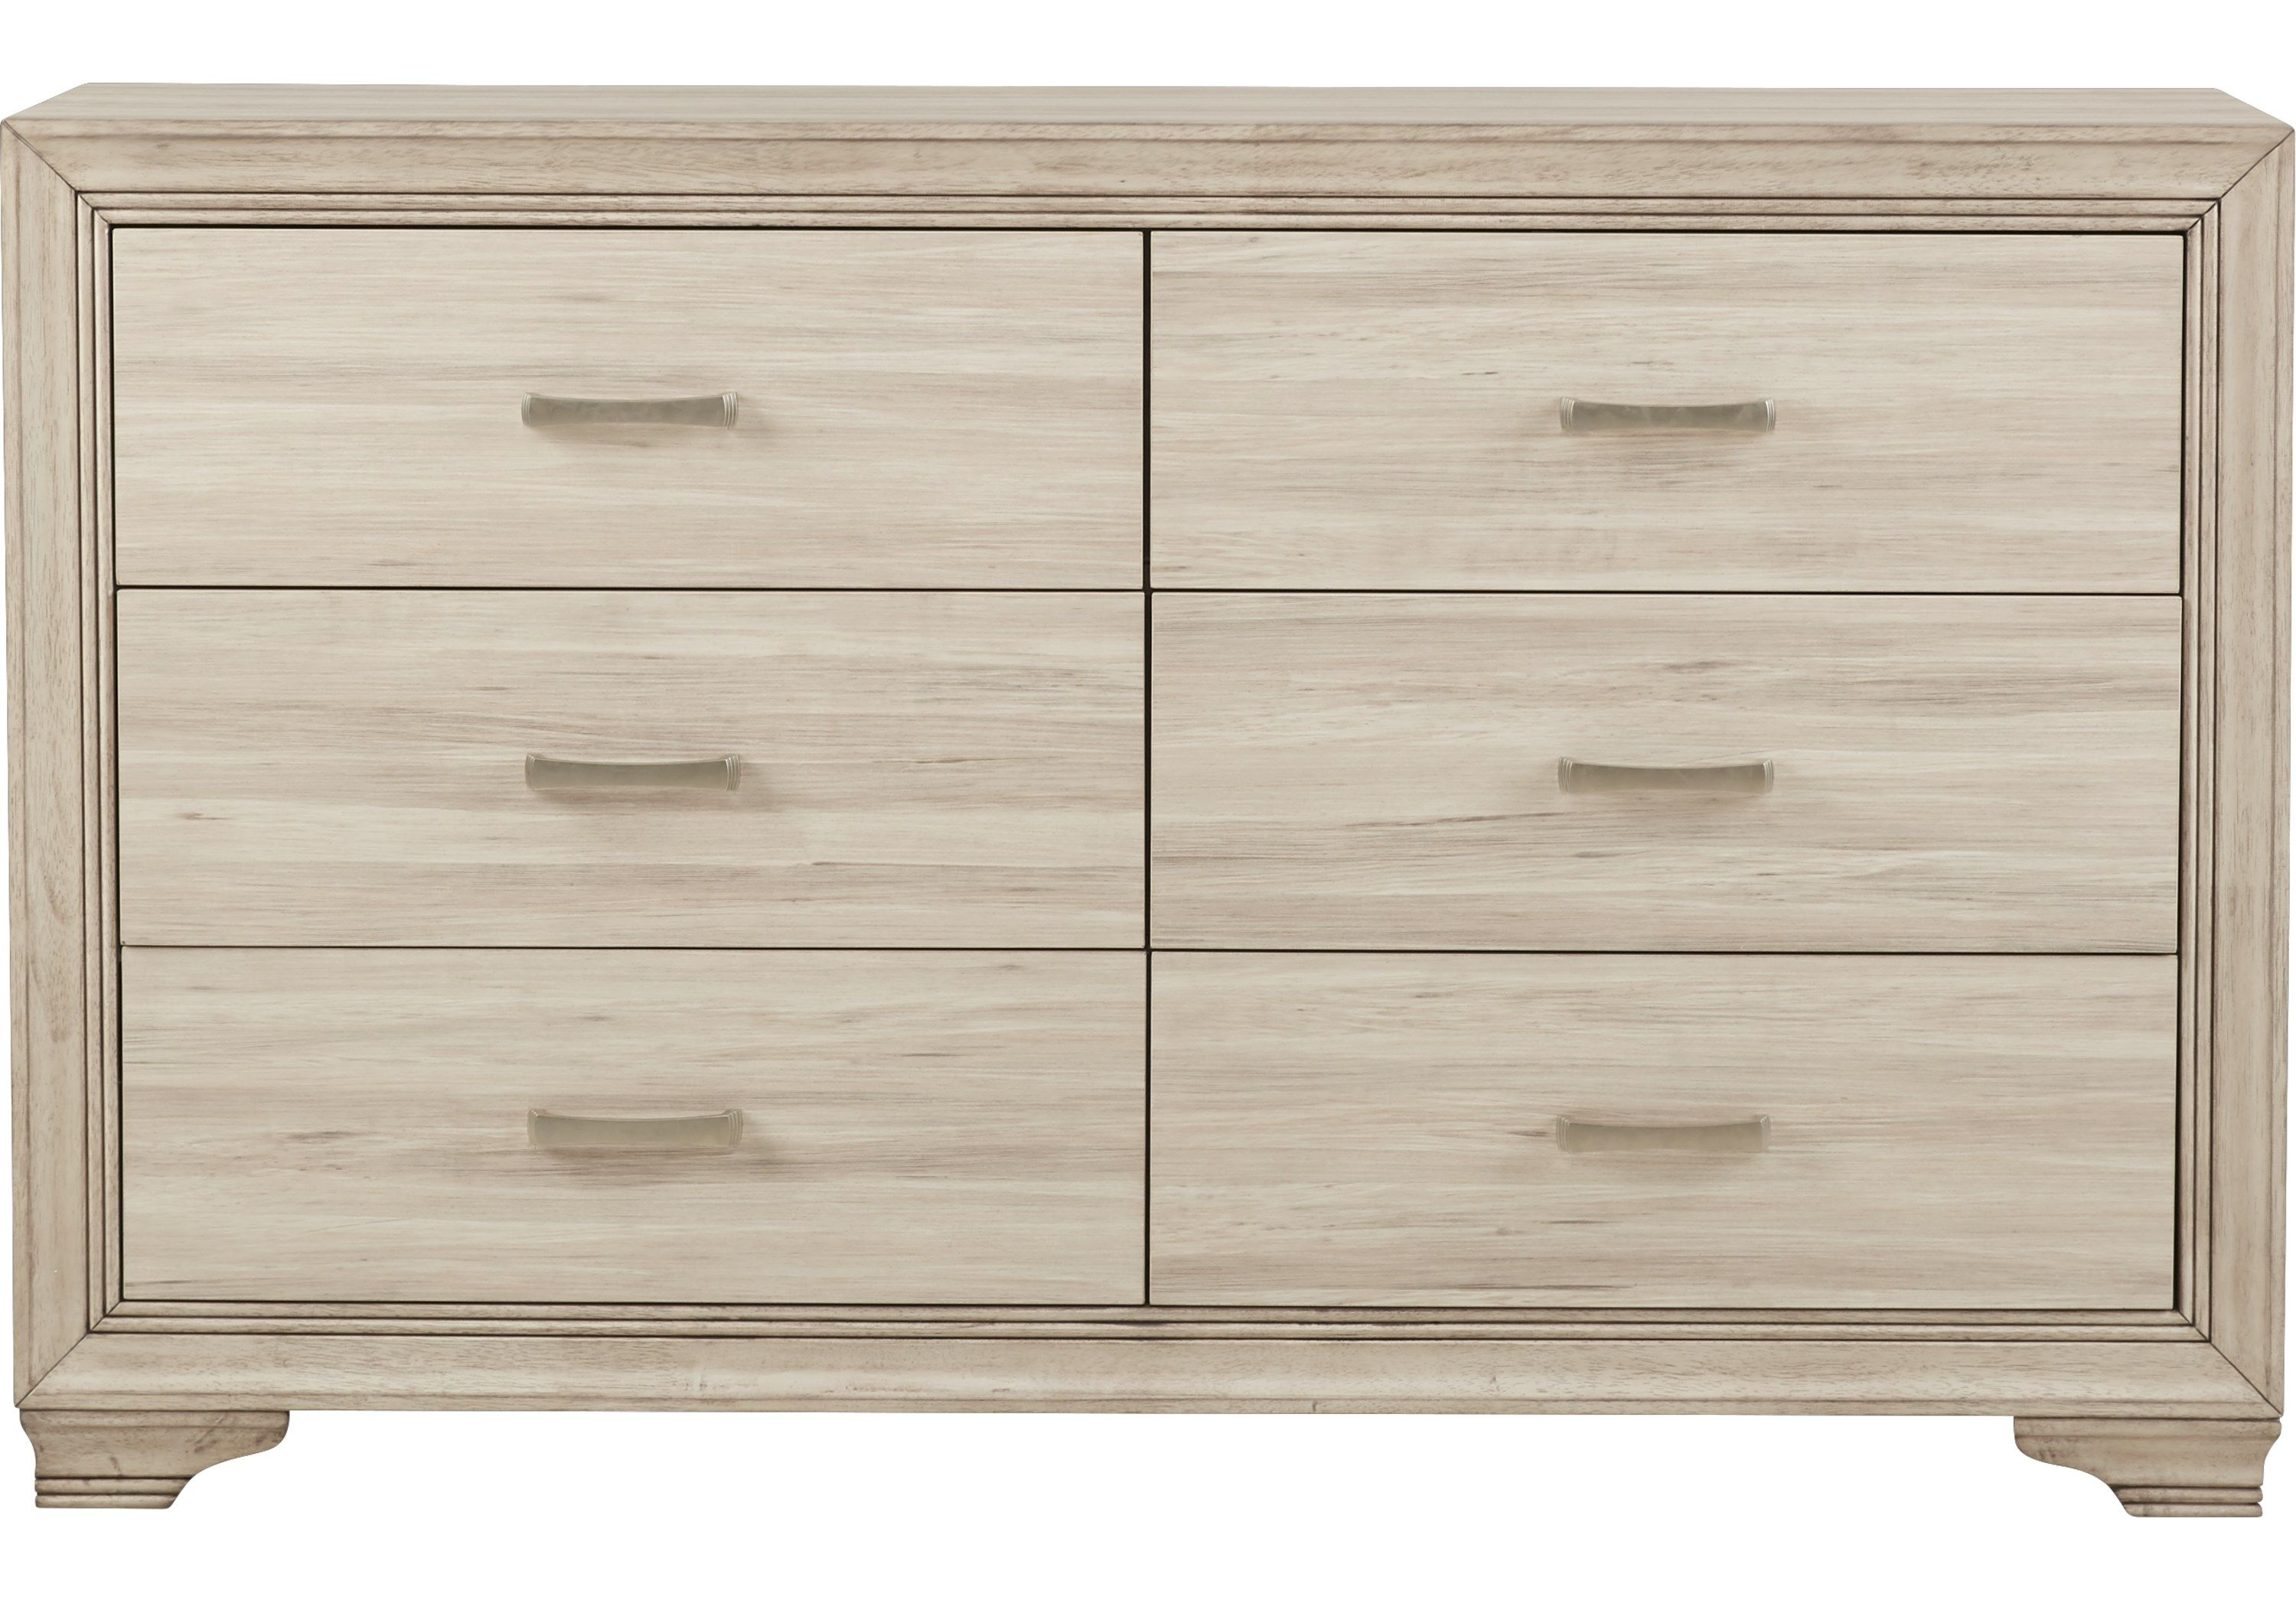 Marlow Natural Dresser Natural Dressers Light Wood Dresser Dresser